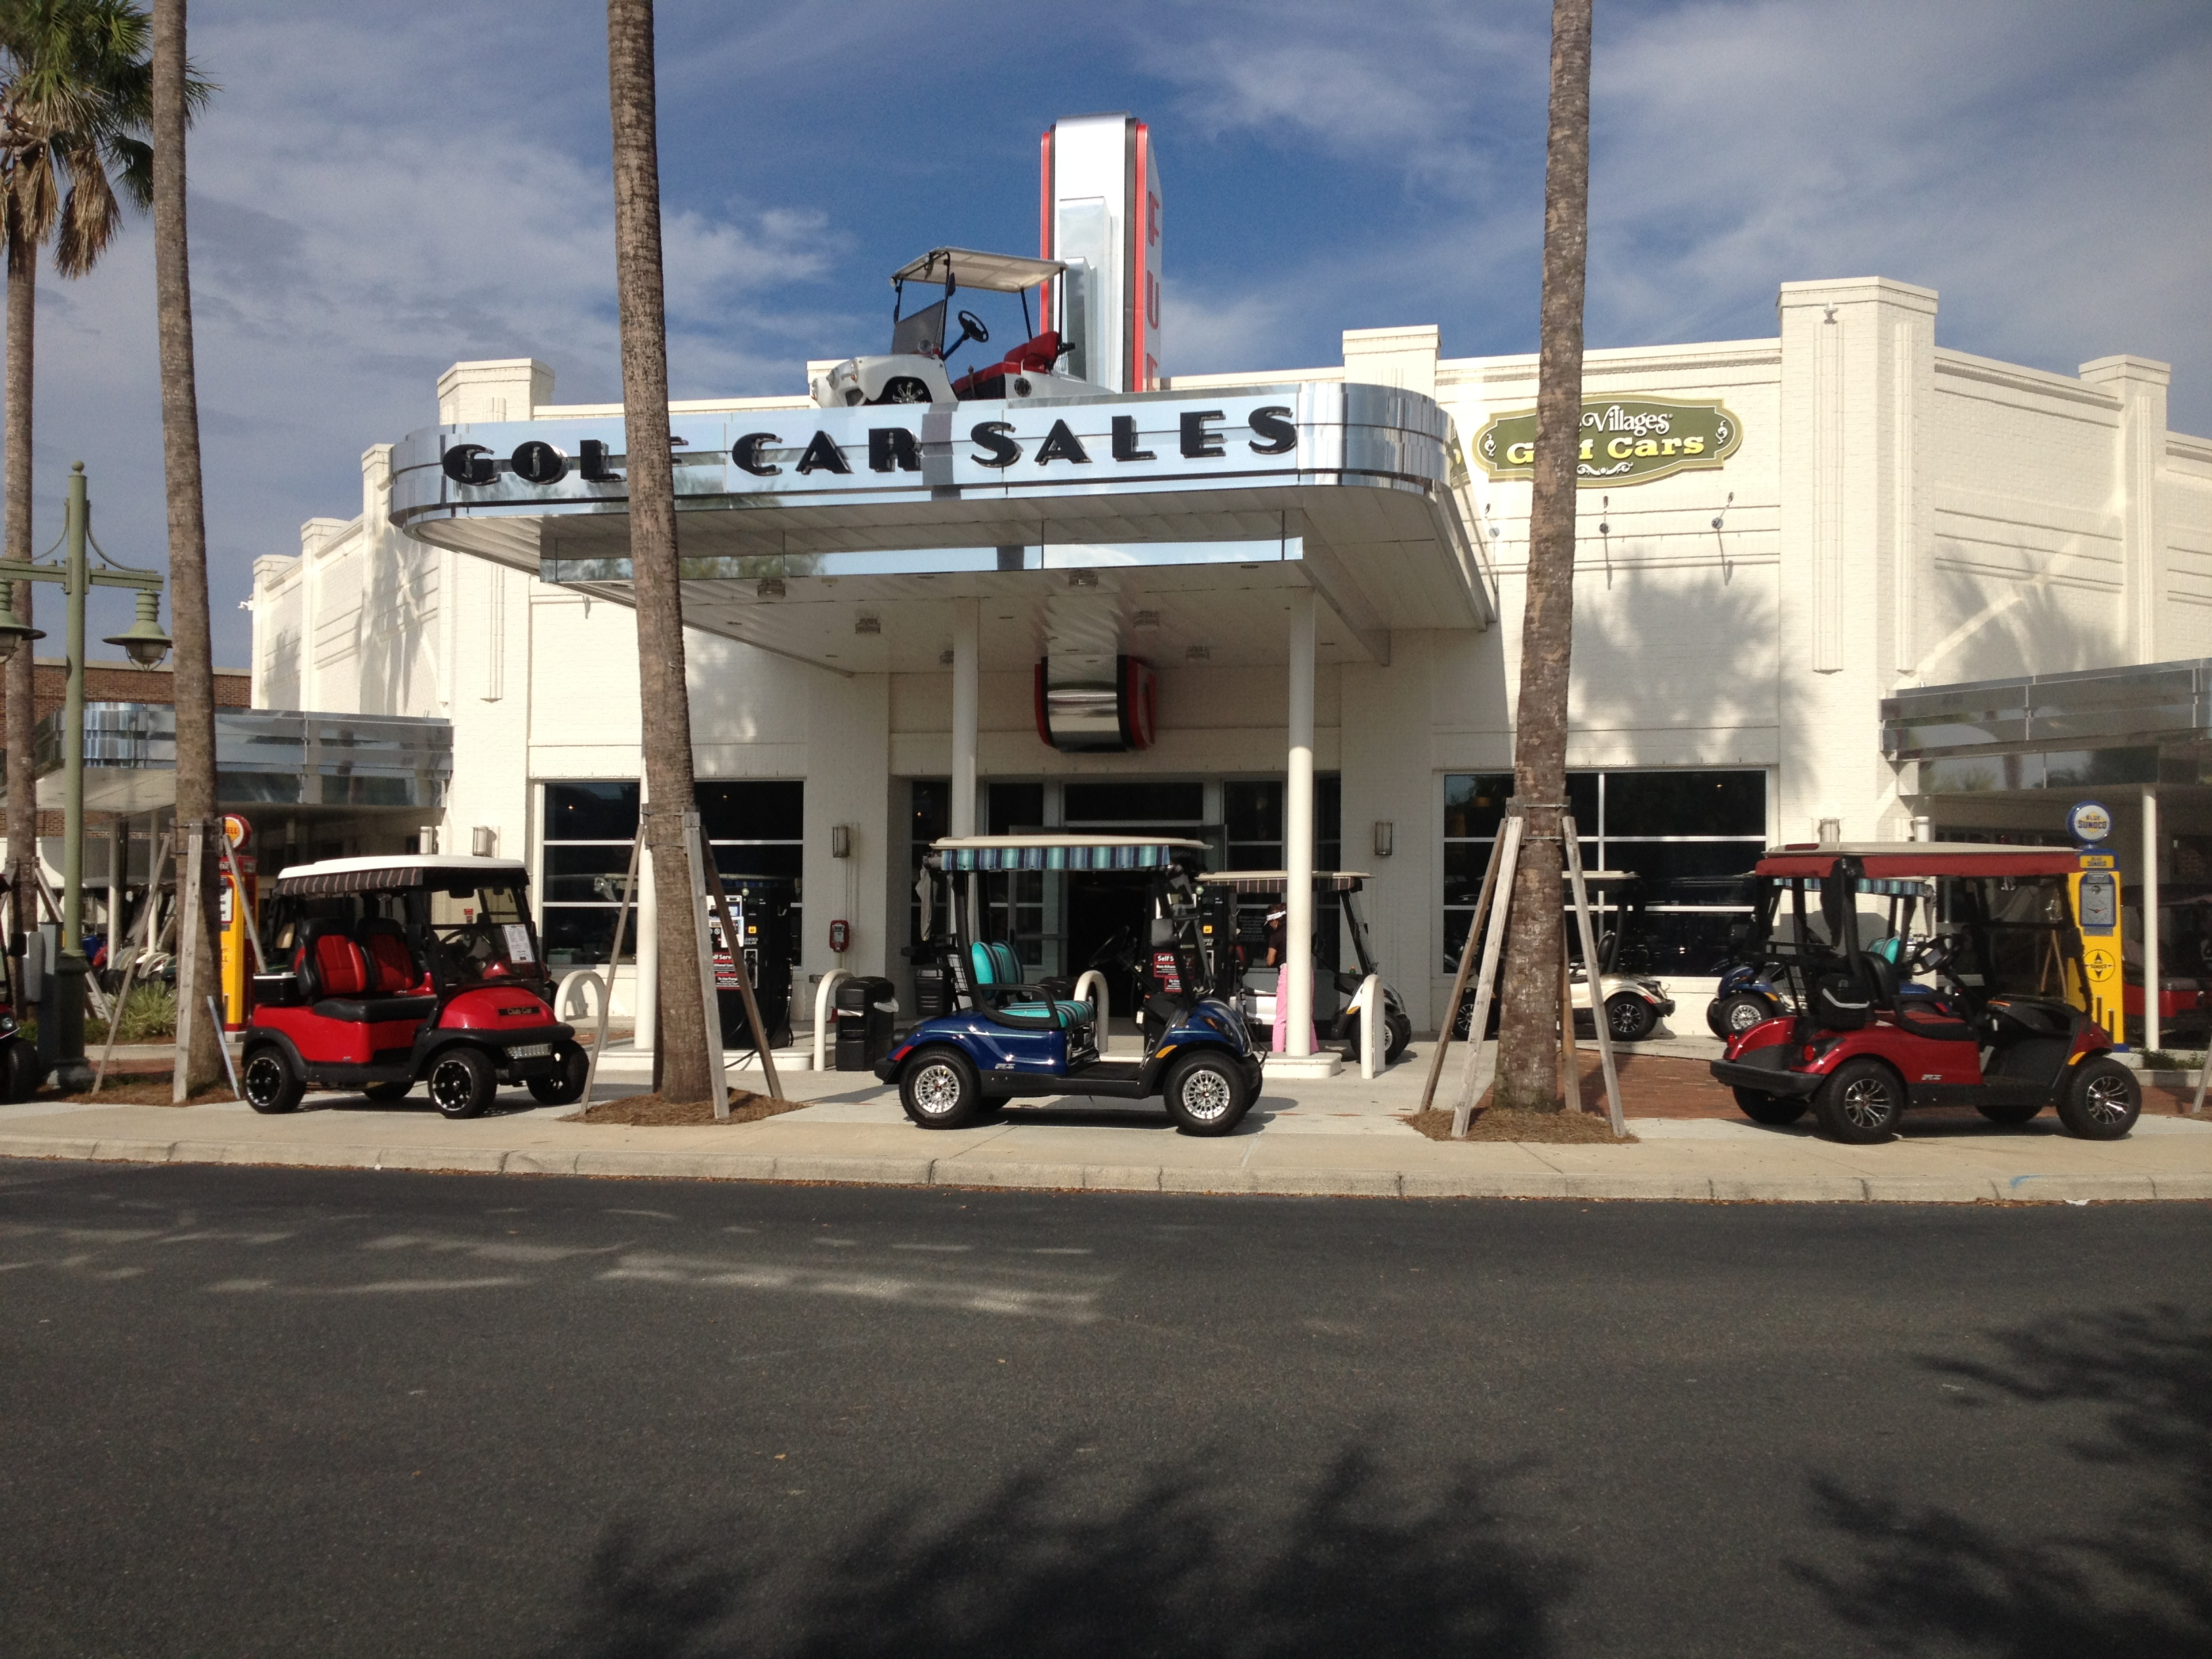 Golf Carts For Sale In The Villages By Owner | Autos Post